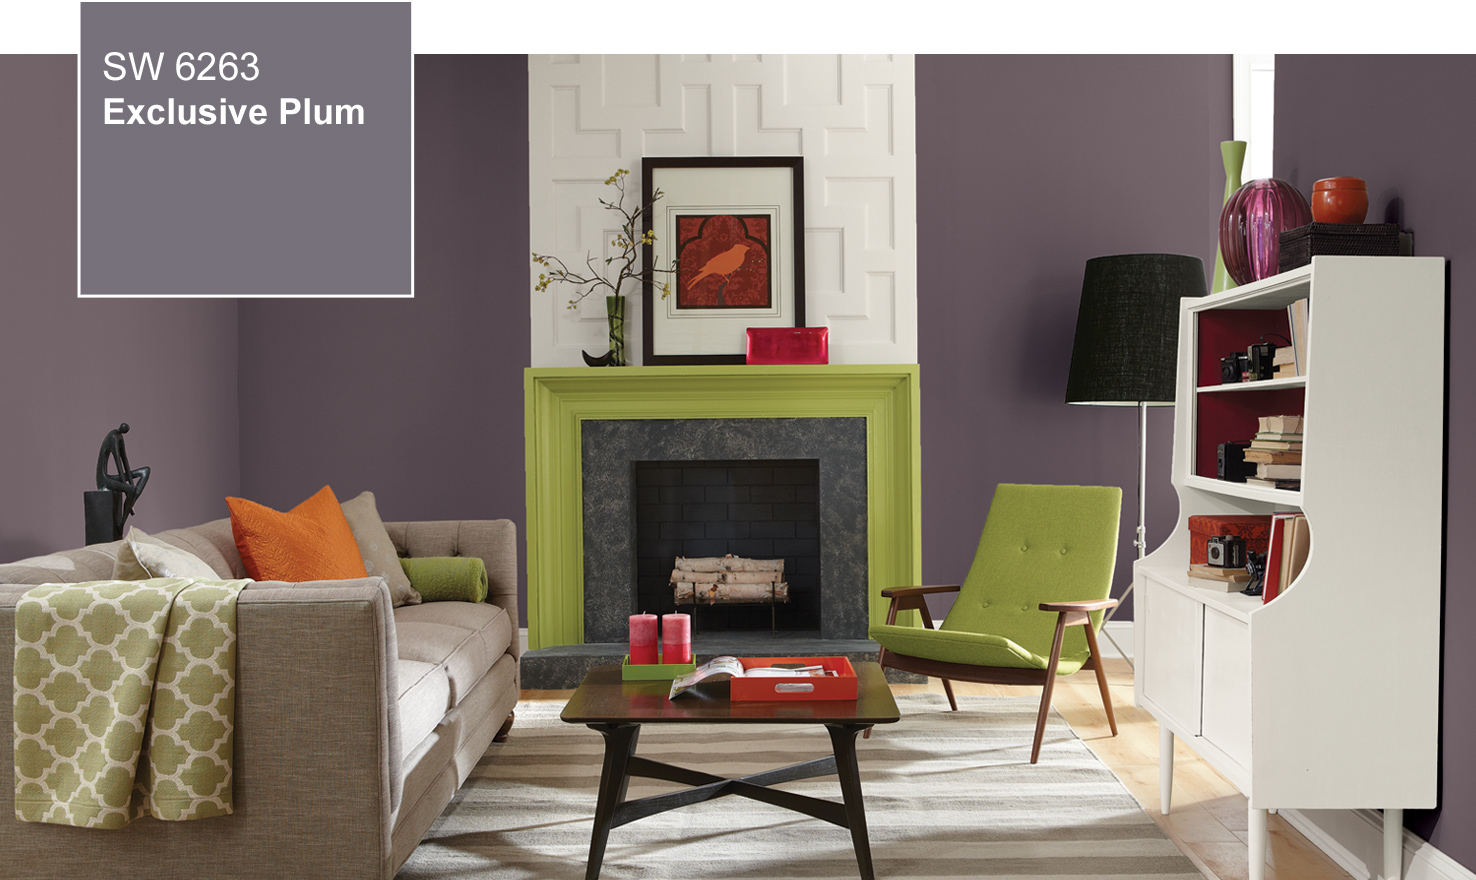 2014 color of the year exclusive plum sw 6263 by for Top 10 living room paint colors 2014